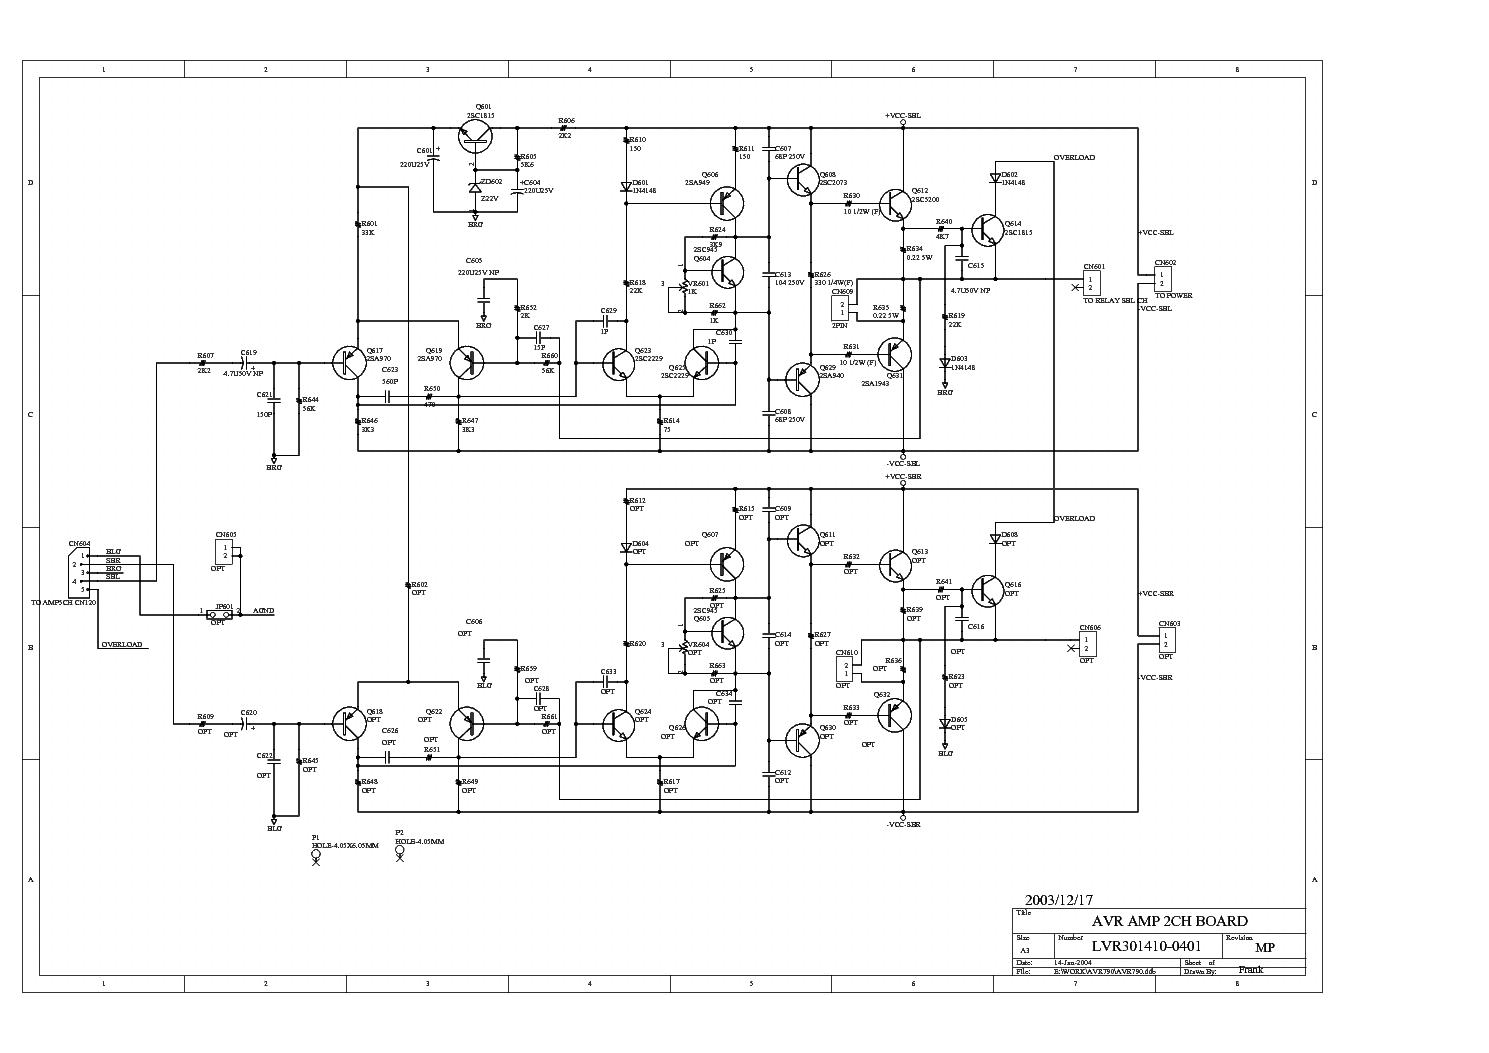 Jamo classic 6 sch assembly service manual download, schematics.